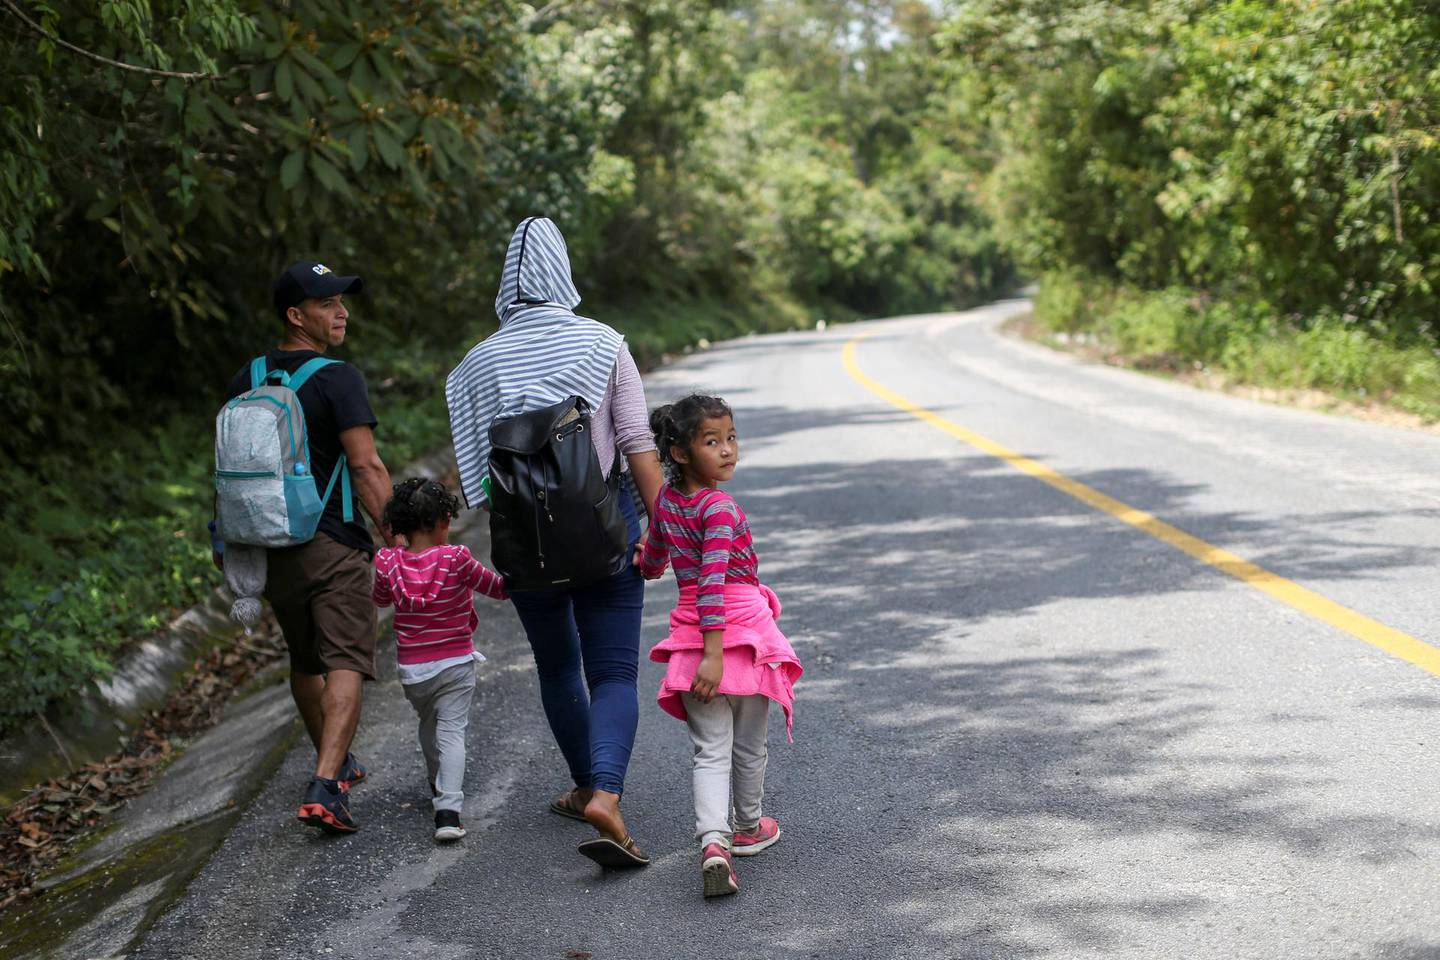 A Honduran migrant family trying to reach the U.S. walks on a highway on the outskirts of Palenque, Mexico March 8, 2021. Picture taken March 8, 2021. REUTERS/Edgard Garrido